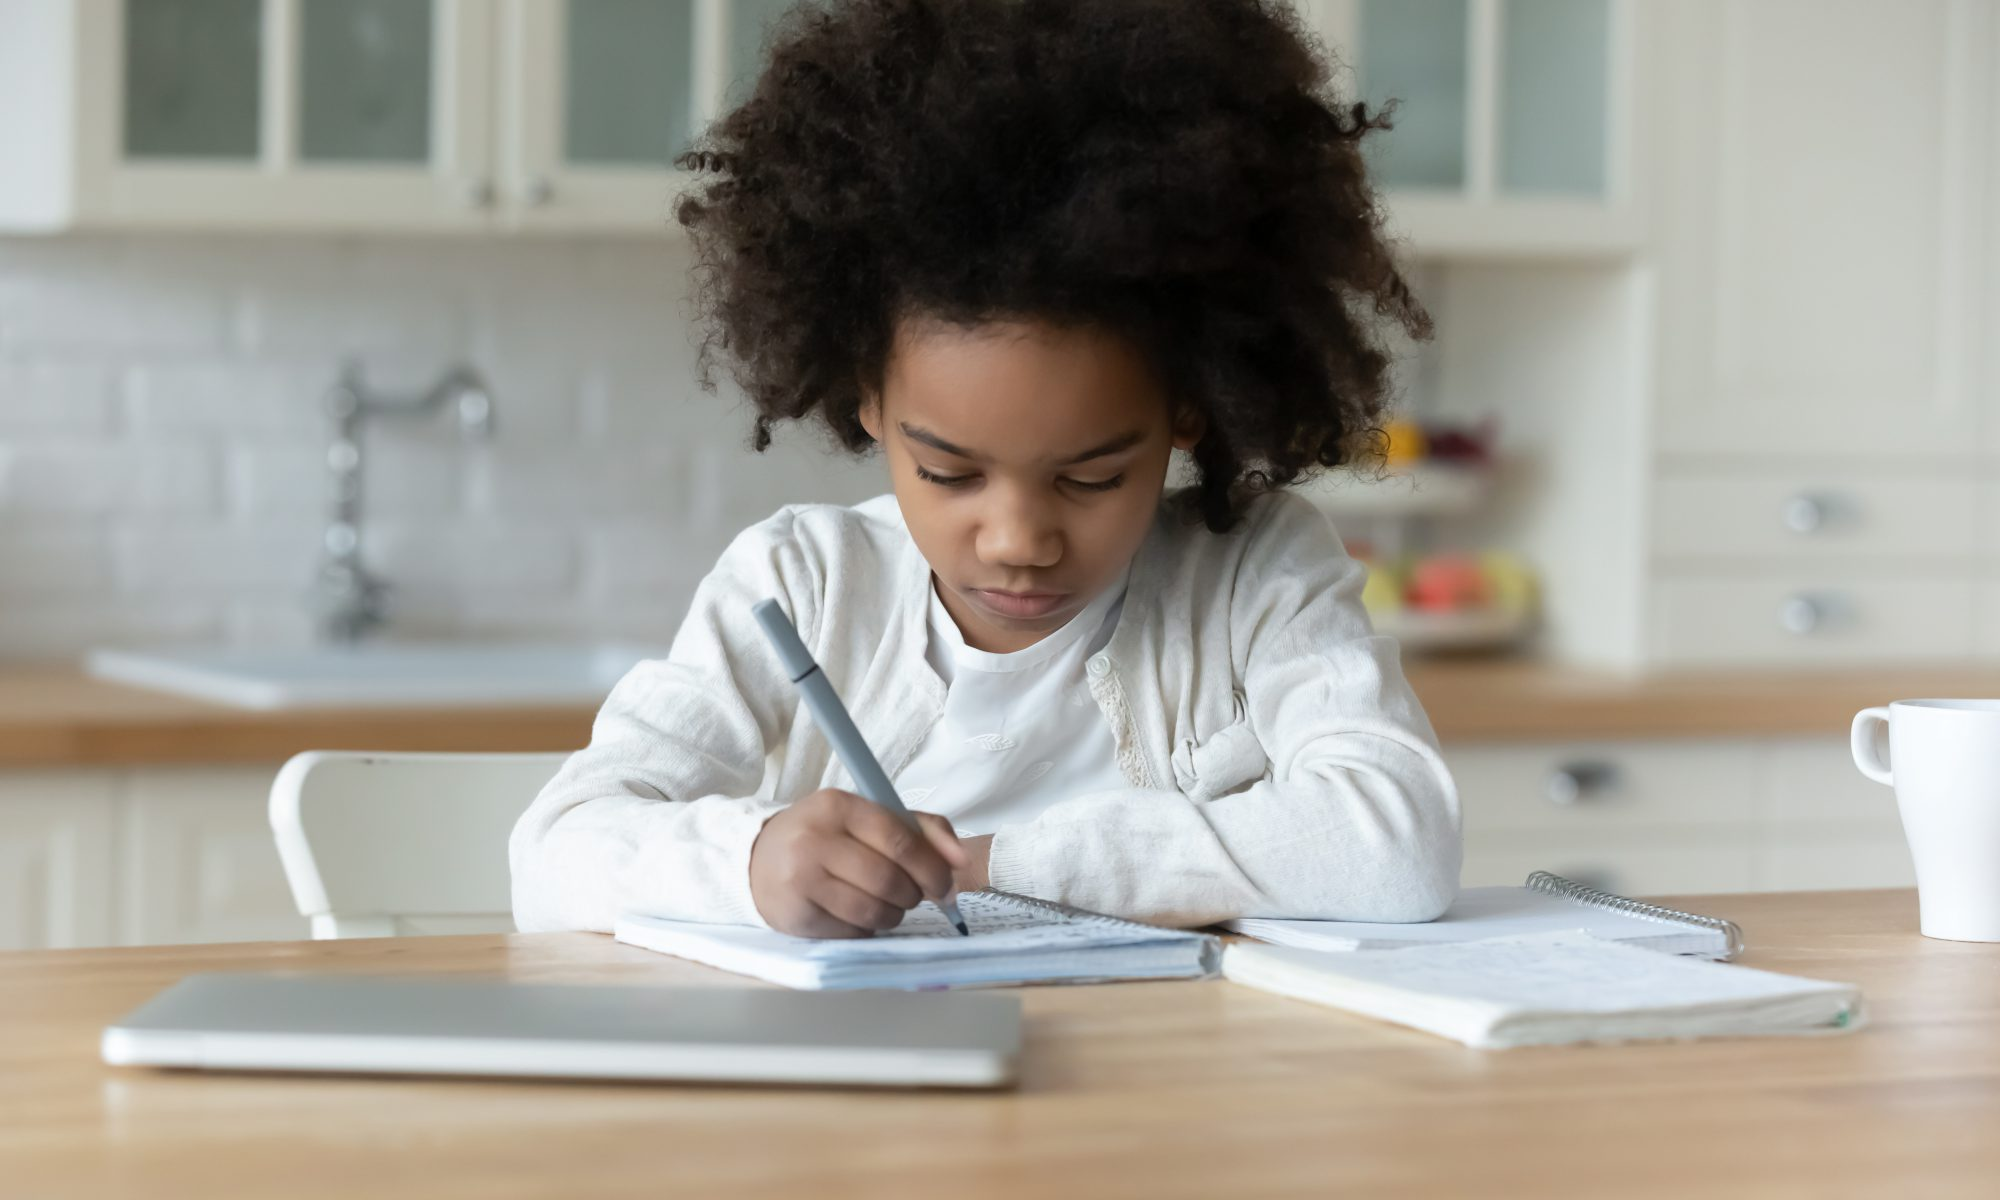 A young girl wearing a white t-shirt and cardigan sweater and holding a pen, sits at a kitchen table and writes in a spiral-bound notebook.